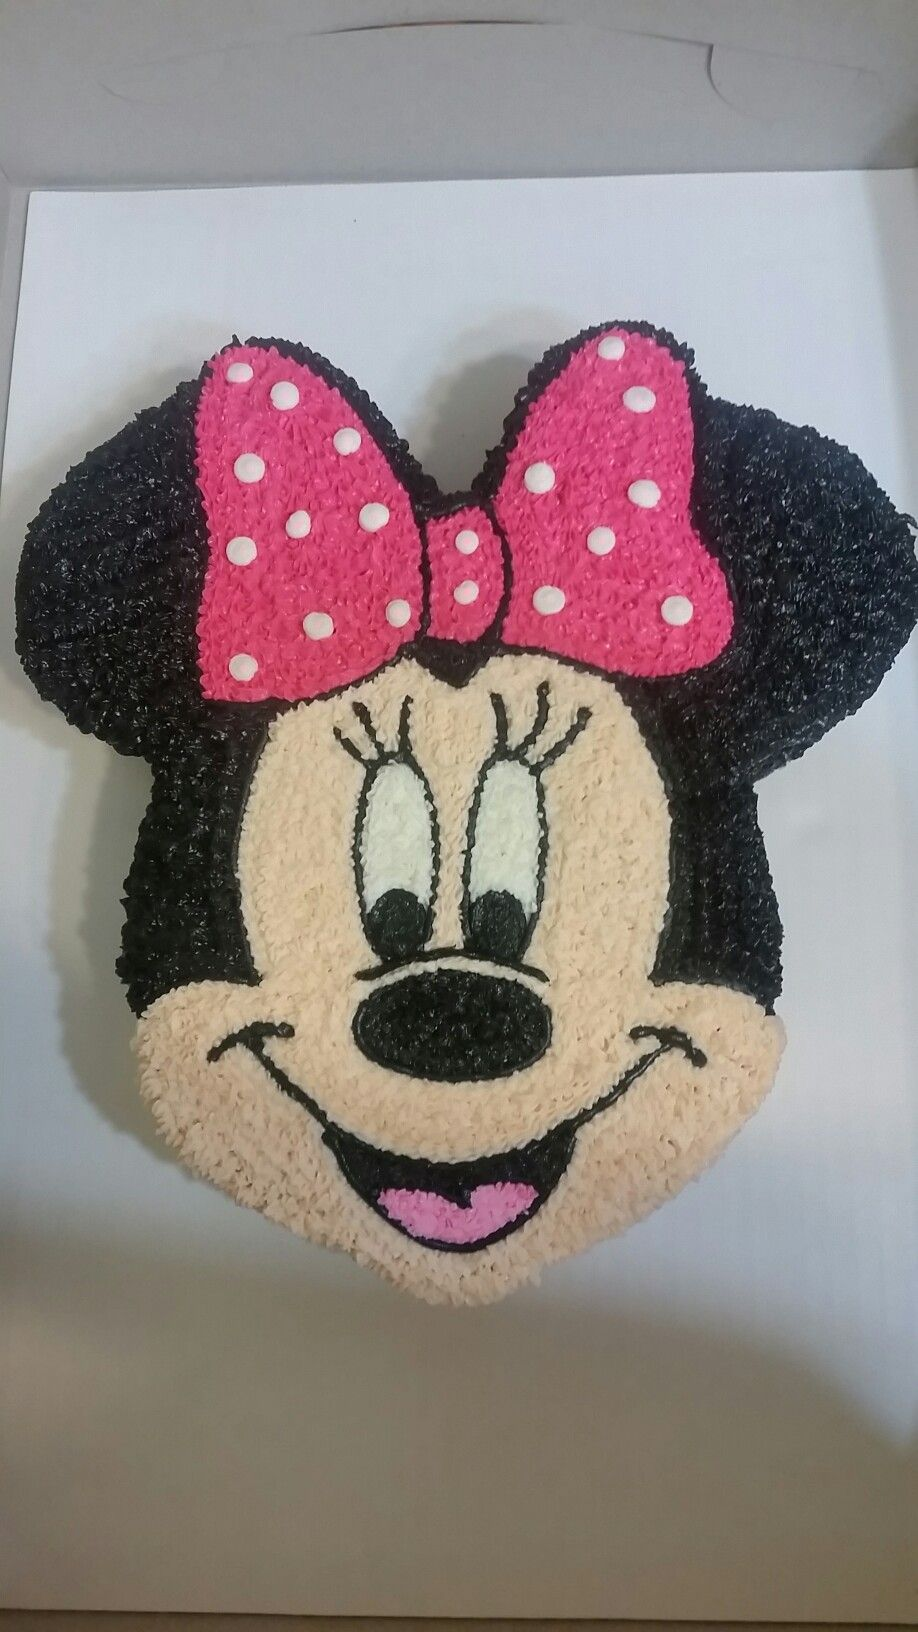 Minnie Mouse Face Cake I Used A Template And Placed It